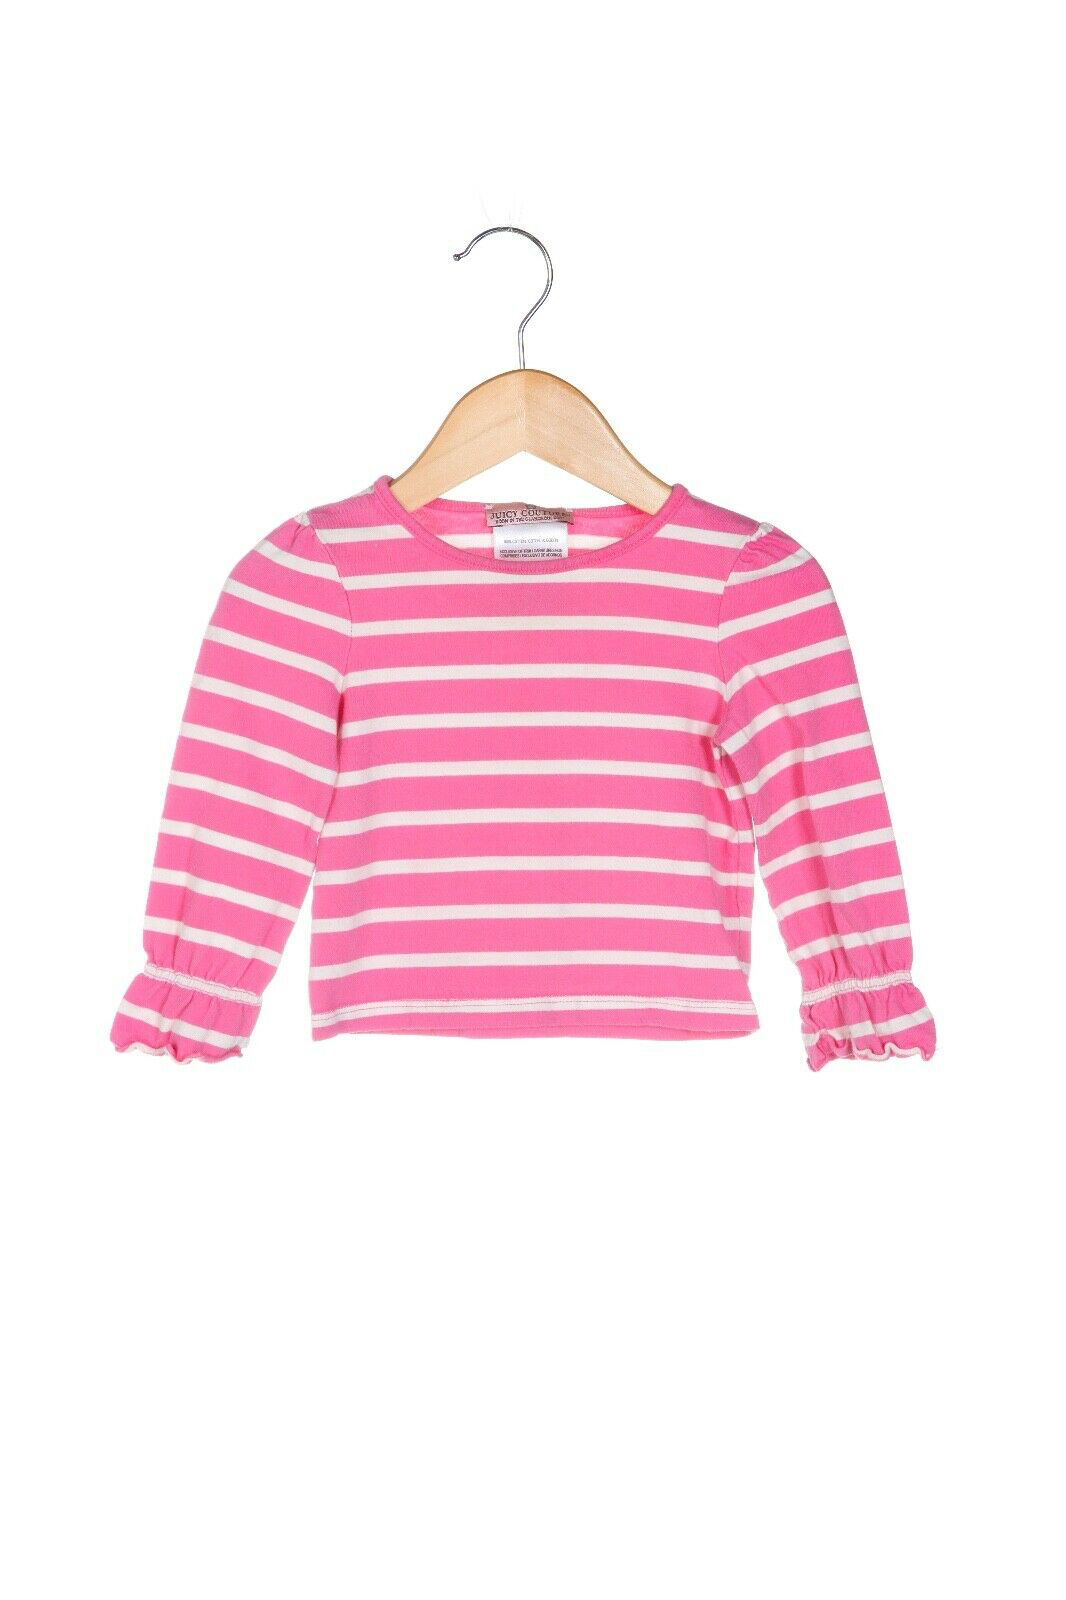 JUICY COUTURE Striped Shirt